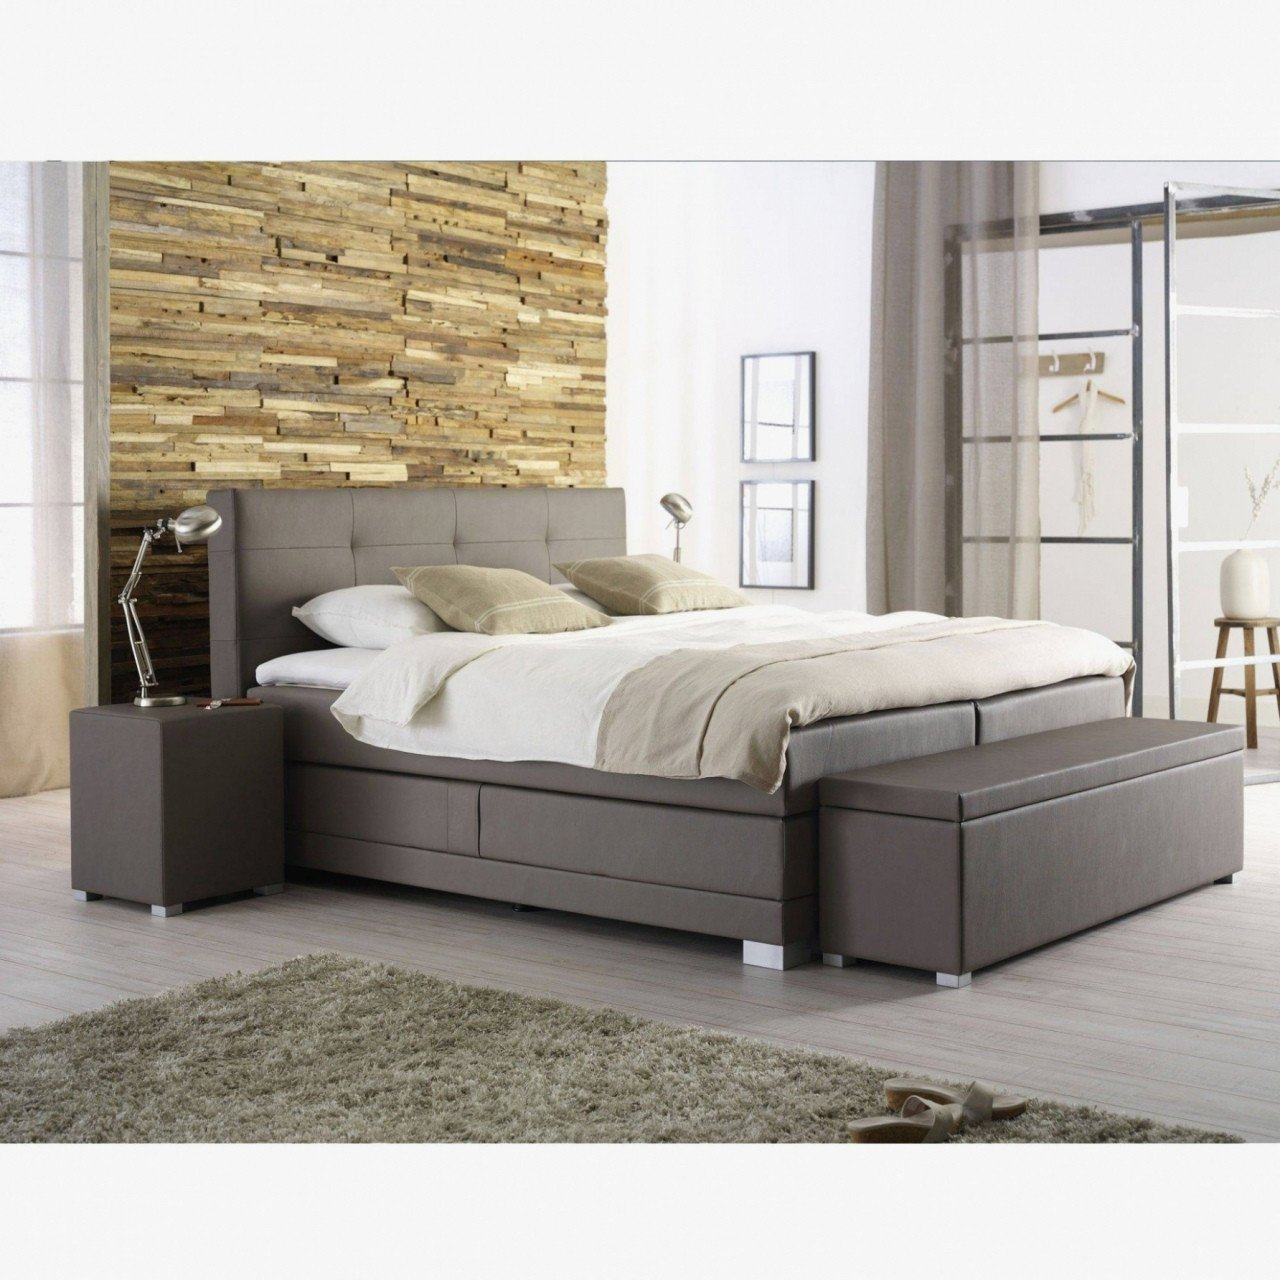 Value City Bedroom Furniture Luxury Green Living Room — Procura Home Blog